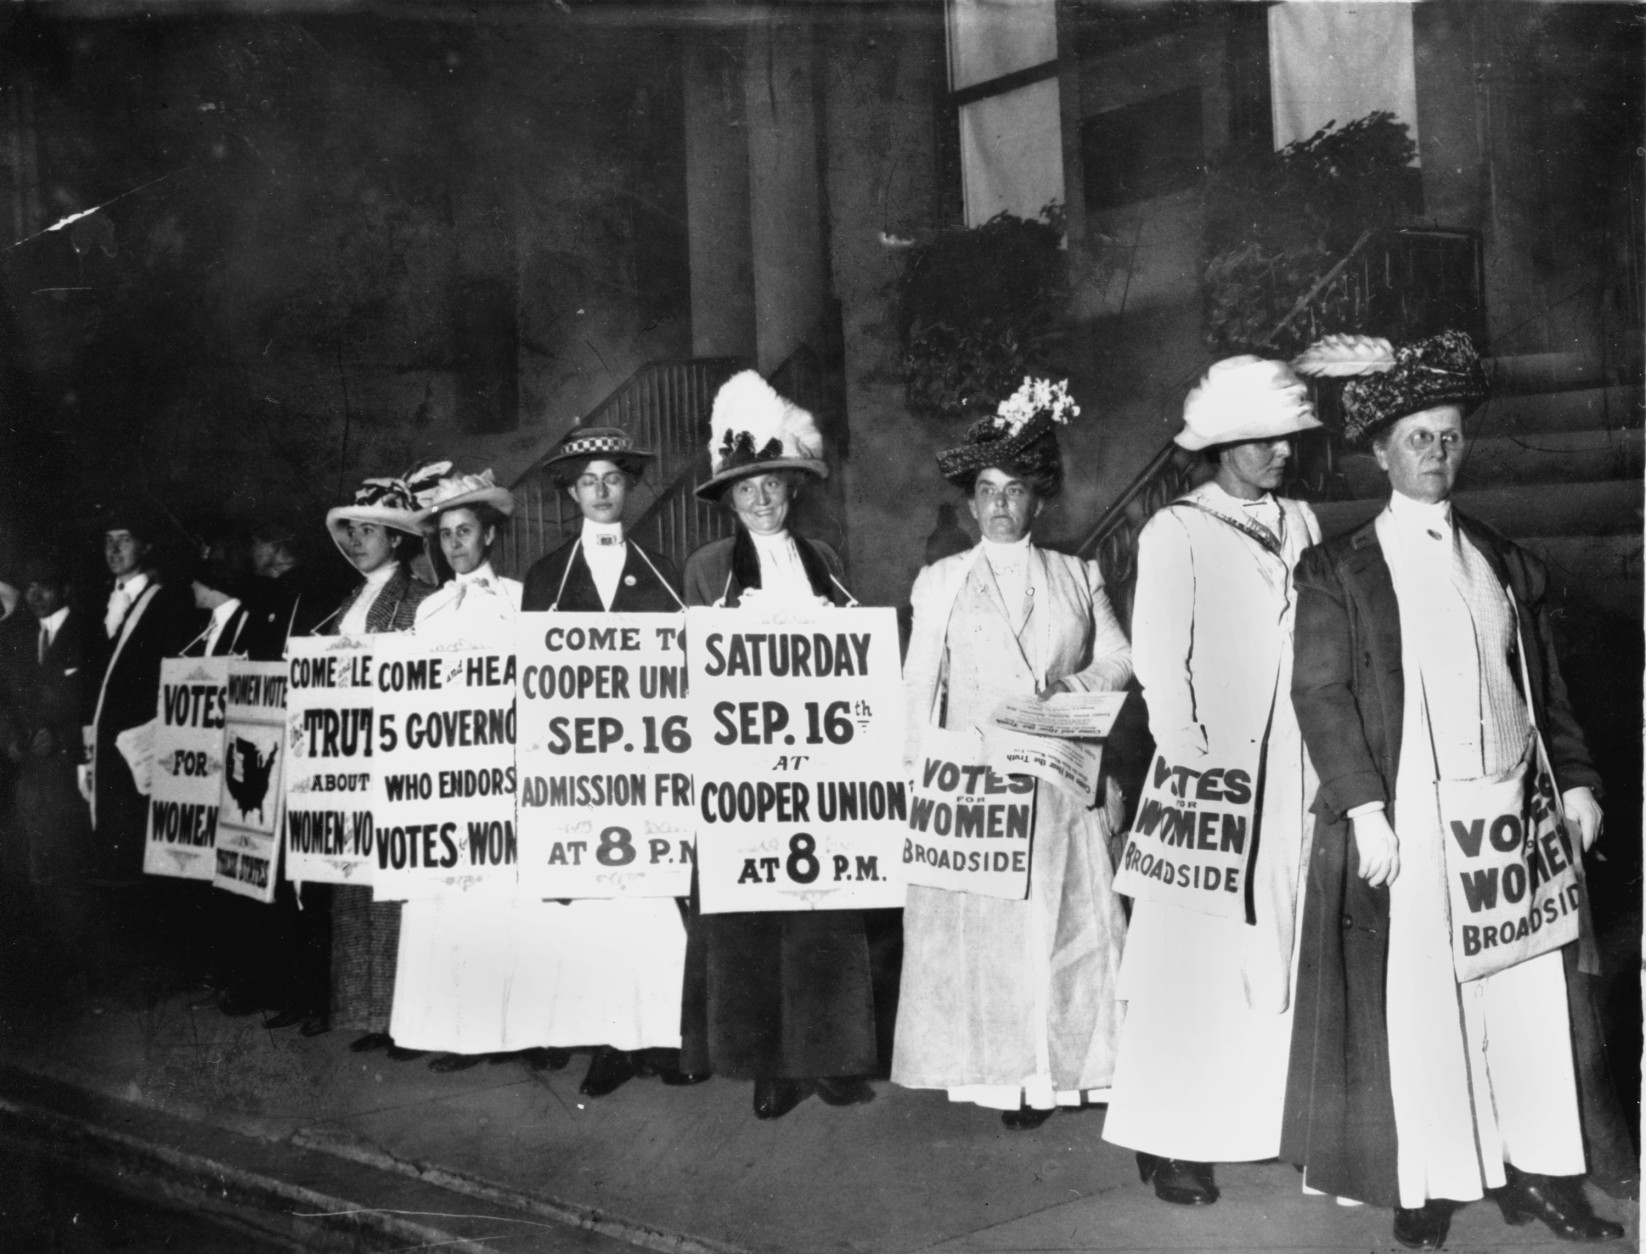 A line of women rally for women's suffrage and advertise a free rally discussing women's right to vote in Washington D.C. on Oct. 3, 1915.  (AP Photo)